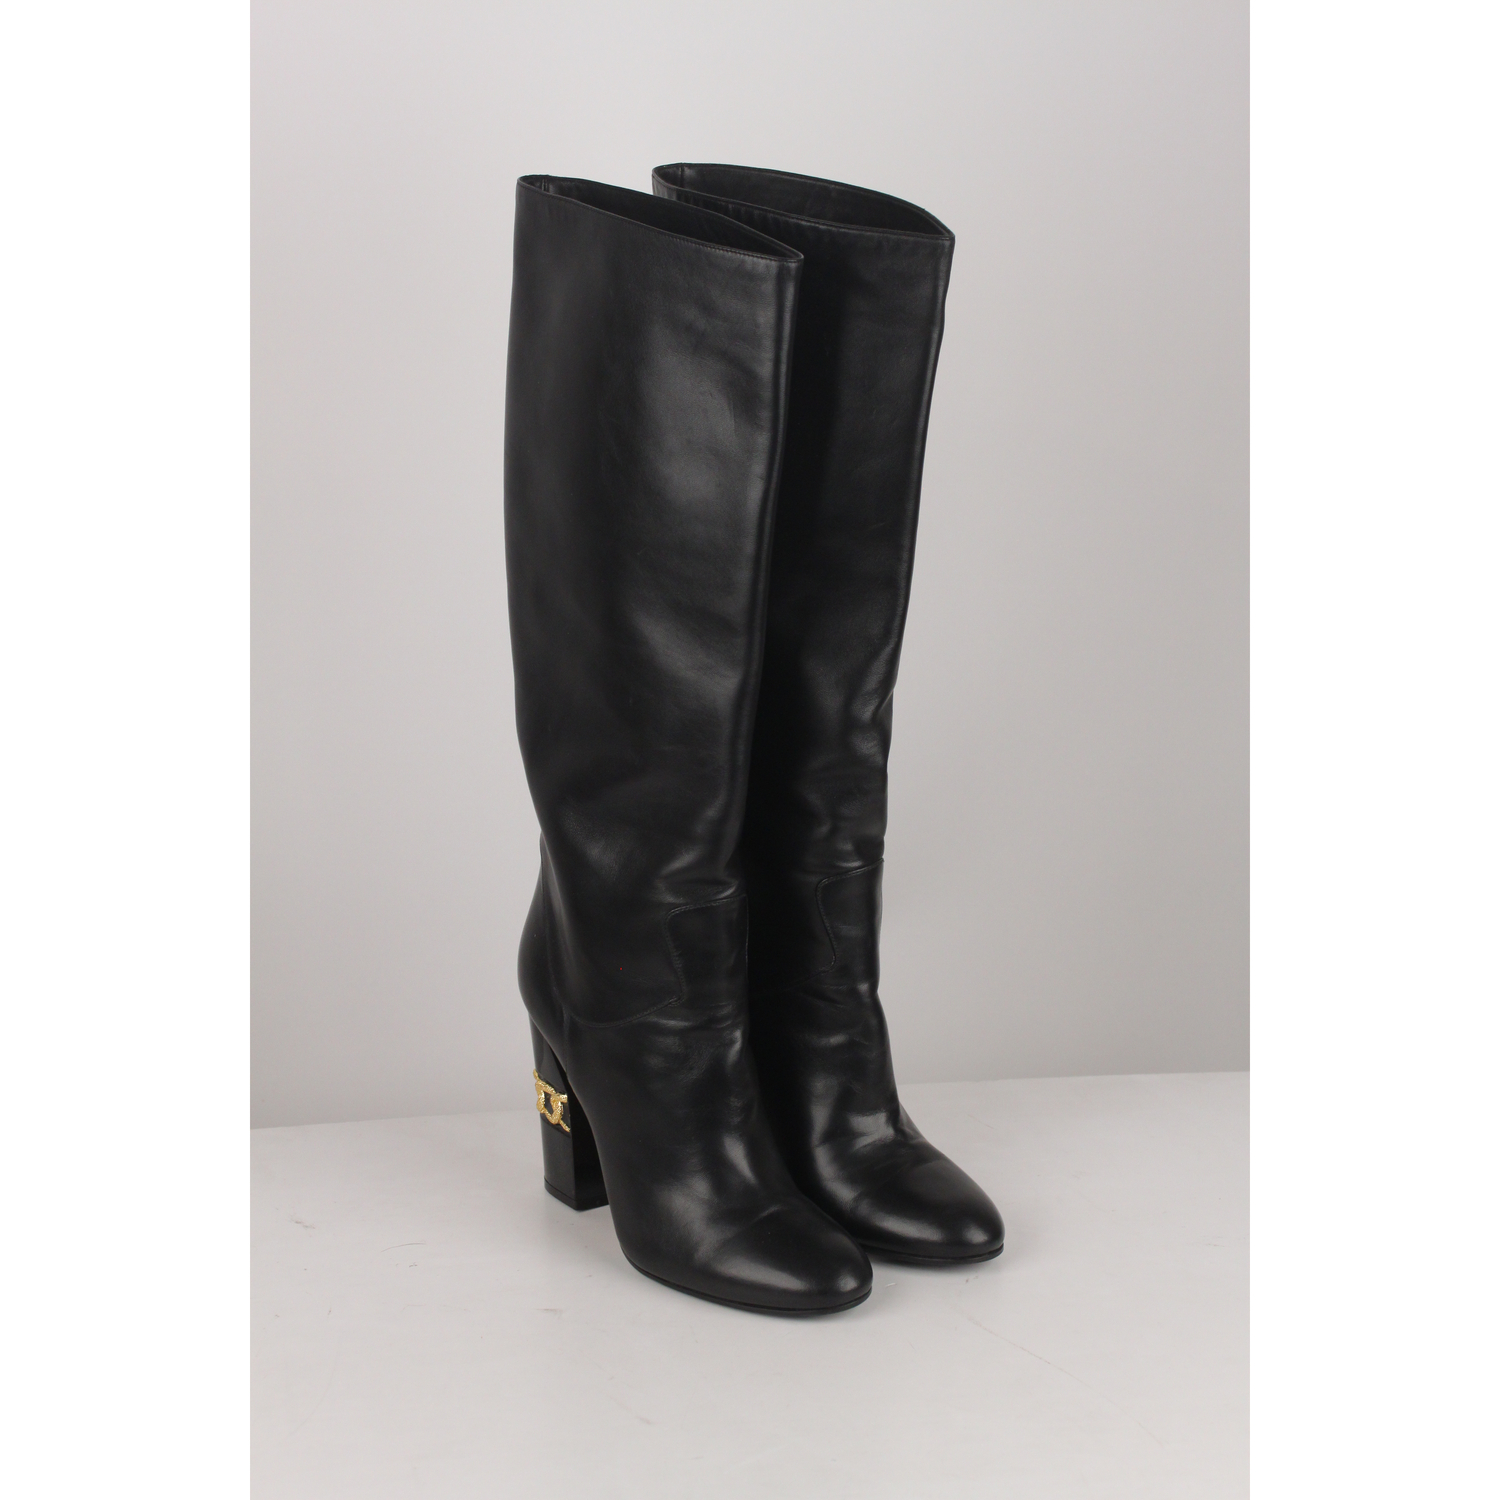 8a0c26bde0e Casadei - Made in Italy - Black Leather - Gold chain detaili on the heels -  Pull on Style - Size 7